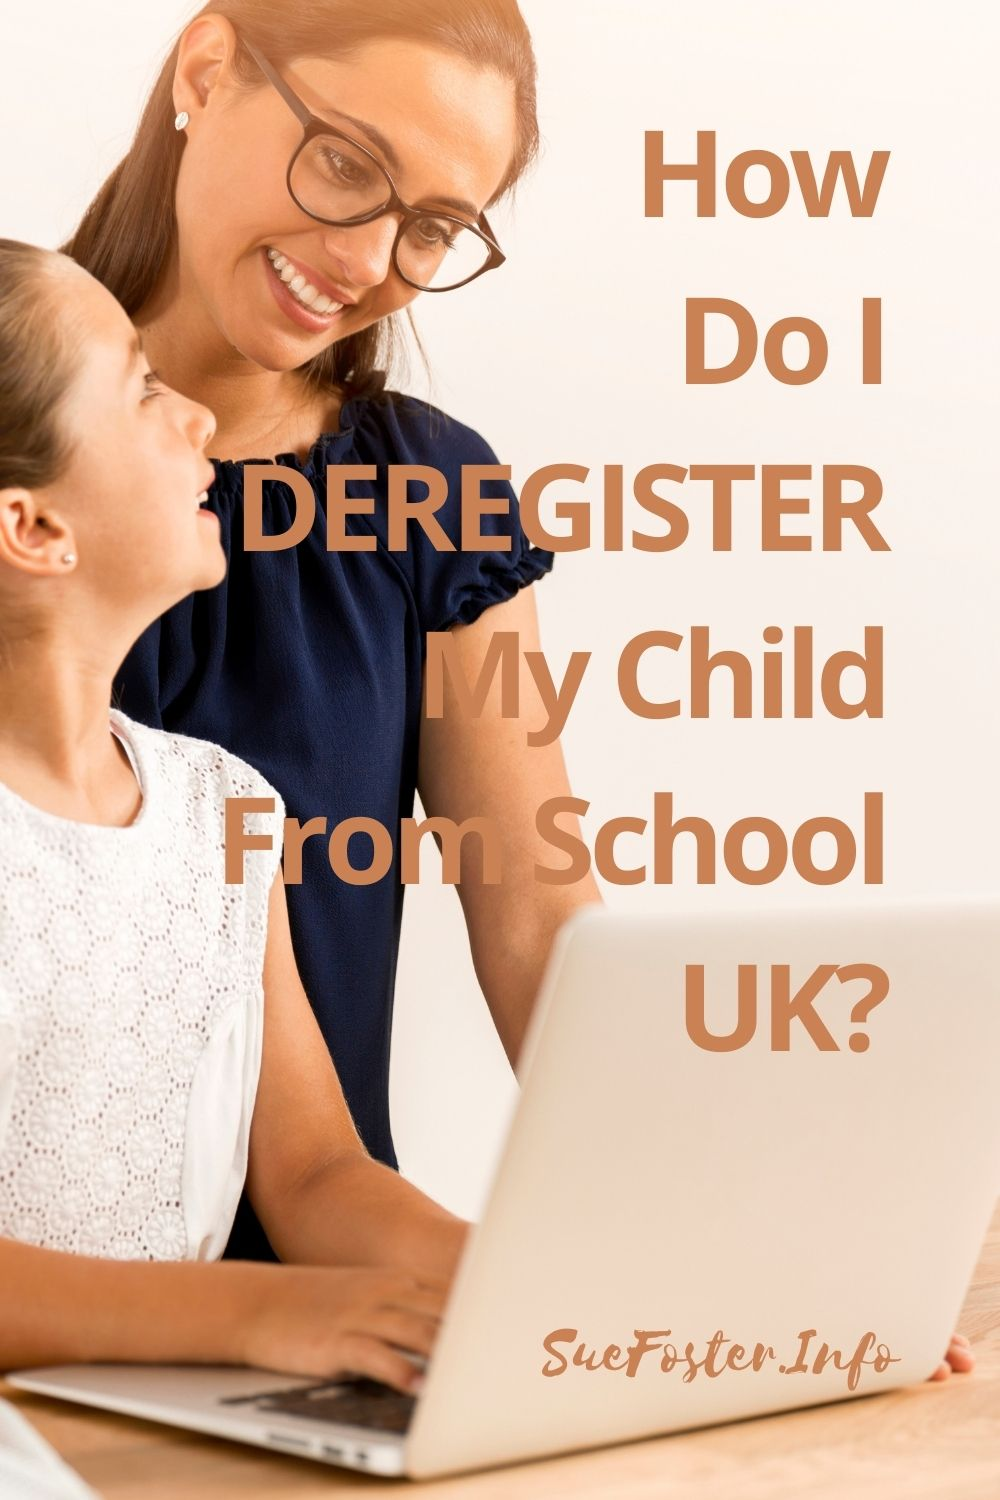 To deregister your child from school, simply send an email or letter to the head of the school and ask for your child to be removed from the school register.